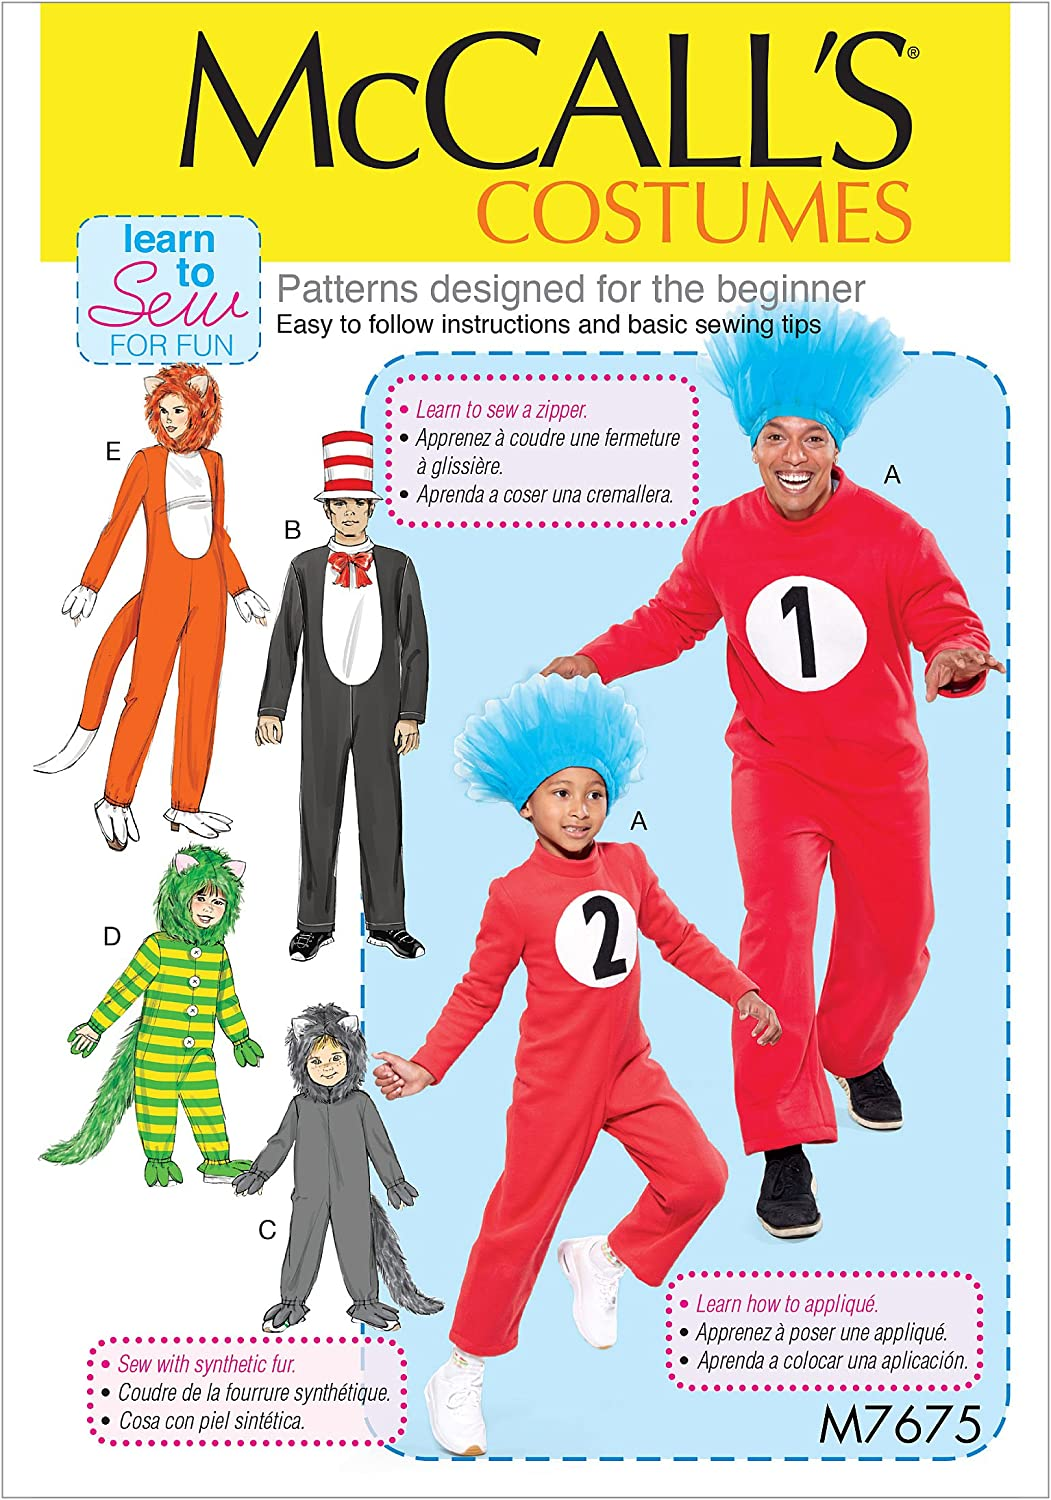 Sizes 3-8 McCalls Patterns Various Jumpsuit Halloween Costume Sewing Patterns for Kids